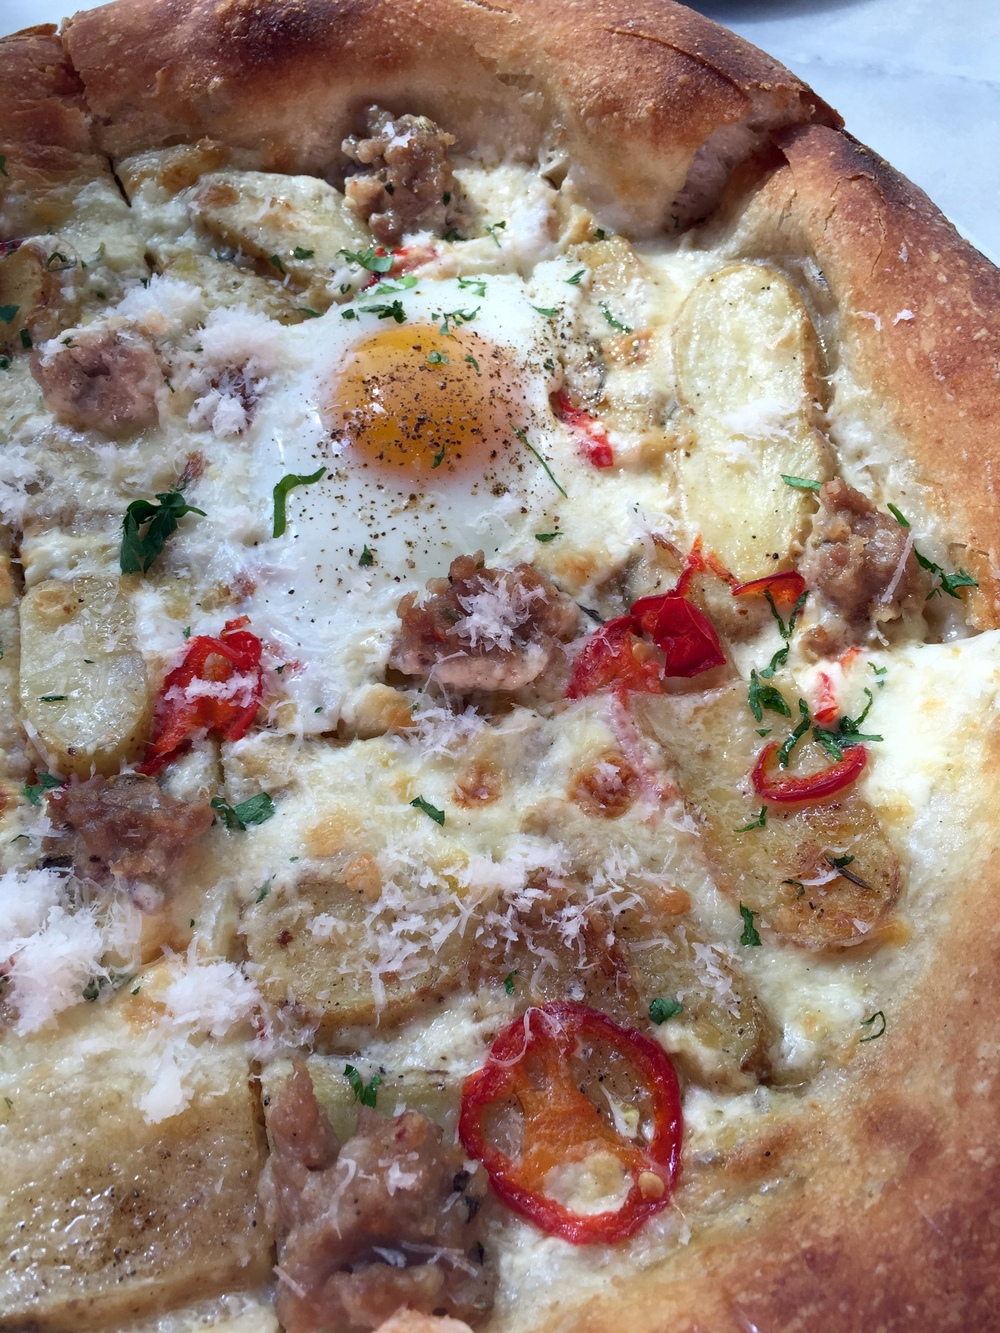 BREAKFAST PIZZA - house sausage, potatoes, pickled chile, rosemary cream, and a farm egg.